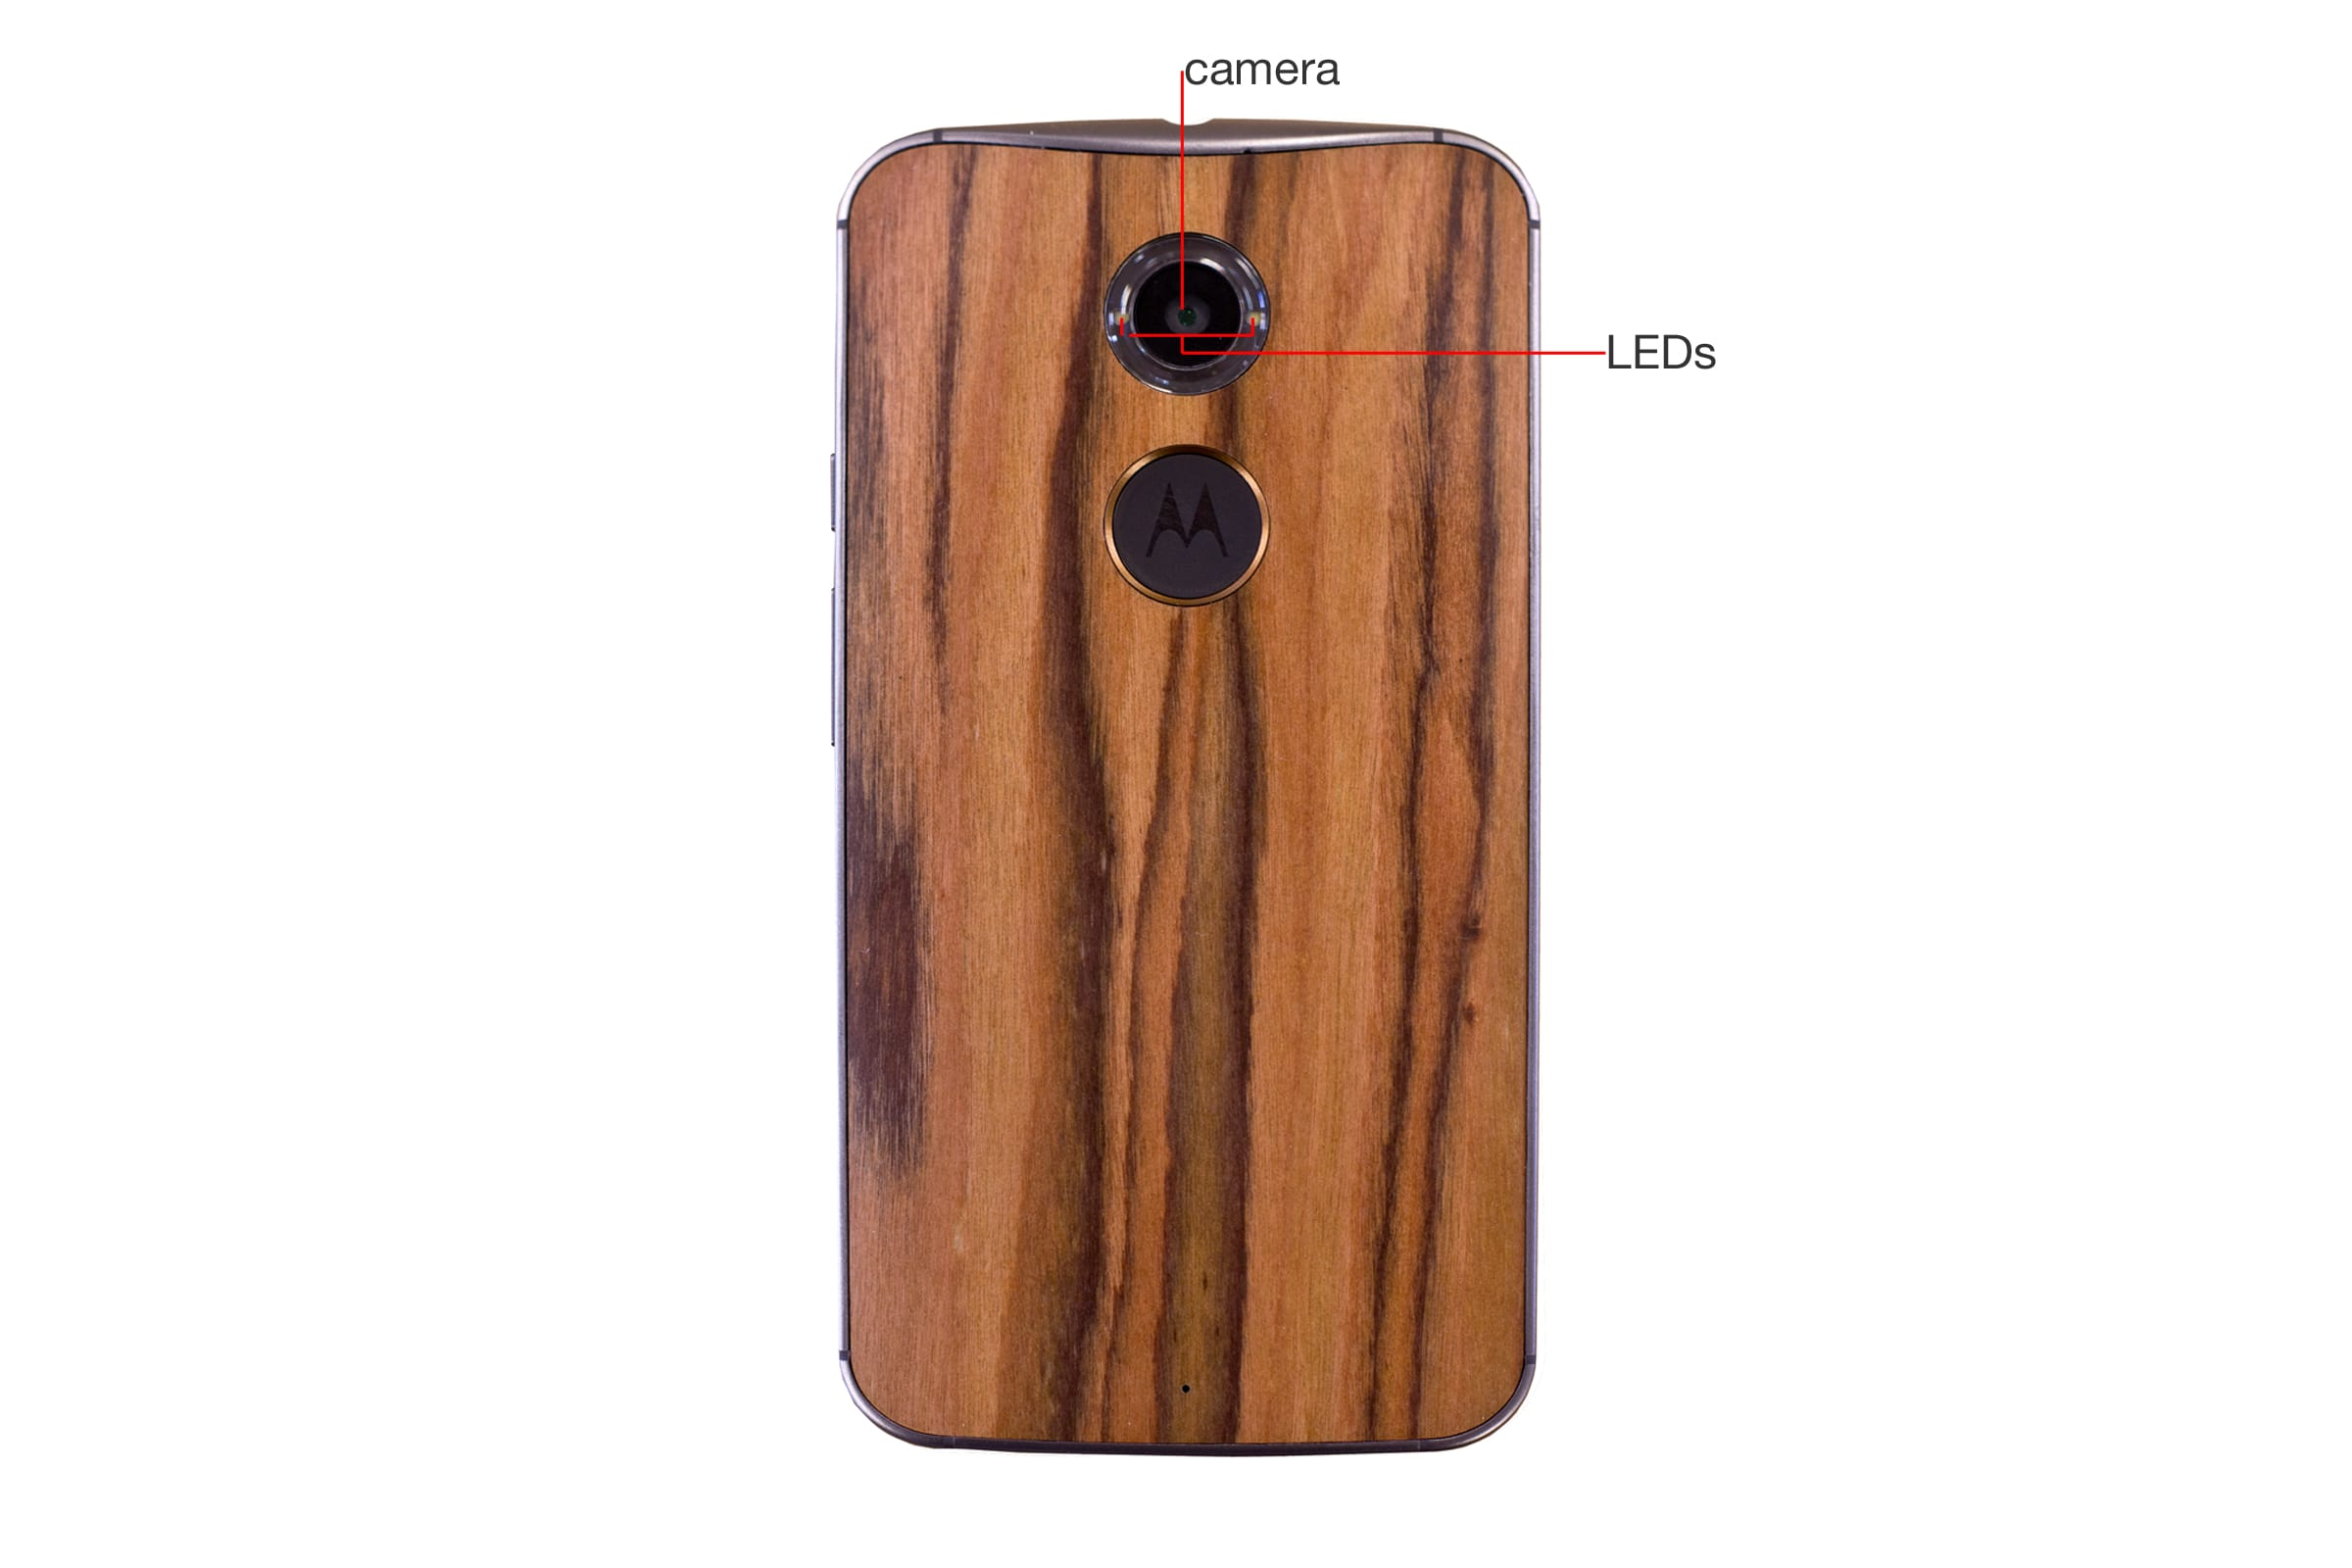 A callout image of the back of the Motorola Moto X 2014 Edition.